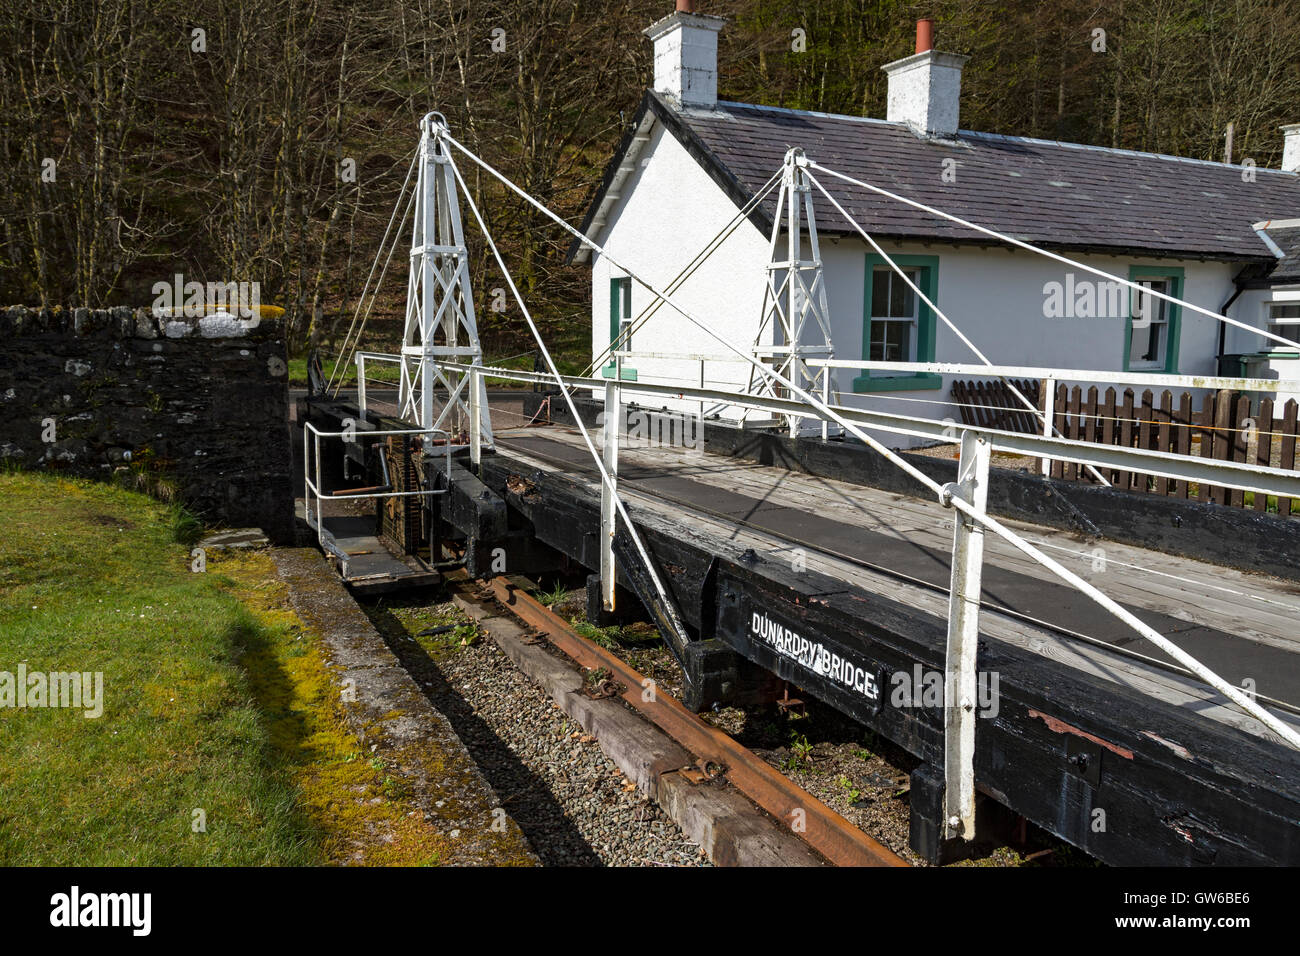 The Retractable Bridge at Dunardry, Lock 11 on the Crinan Canal, Argyll and Bute, Scotland, UK - Stock Image